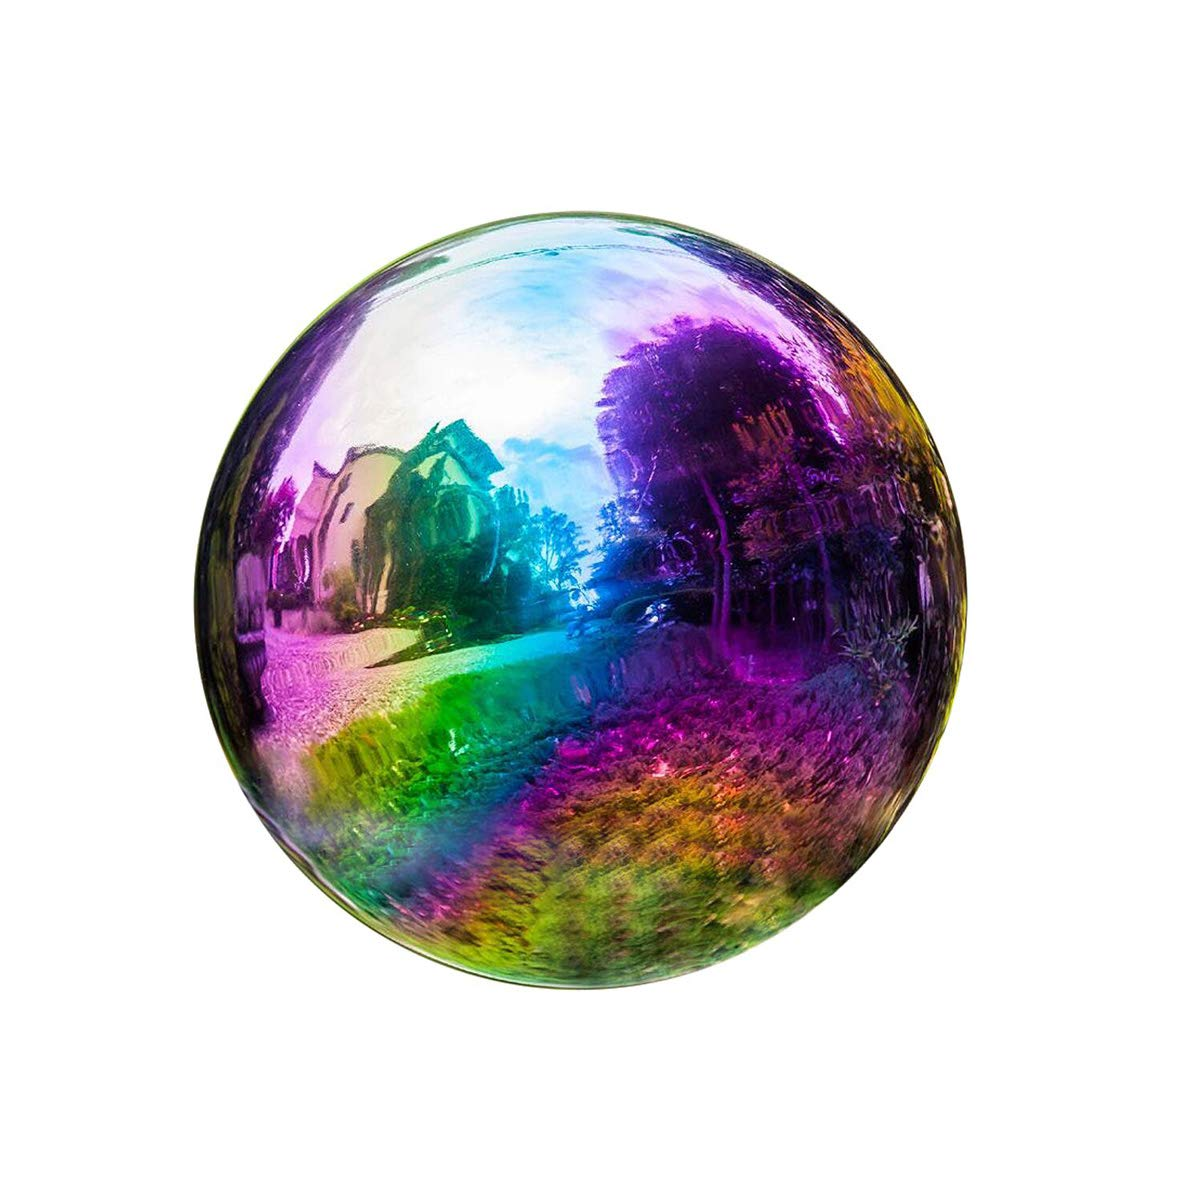 Topadorn Metallic Wonder Stainless Steel Gazing Globe Ball, Outdoor and Indoor Decorations for Home Garden Patio Party Yard, Multi-Color Rainbow